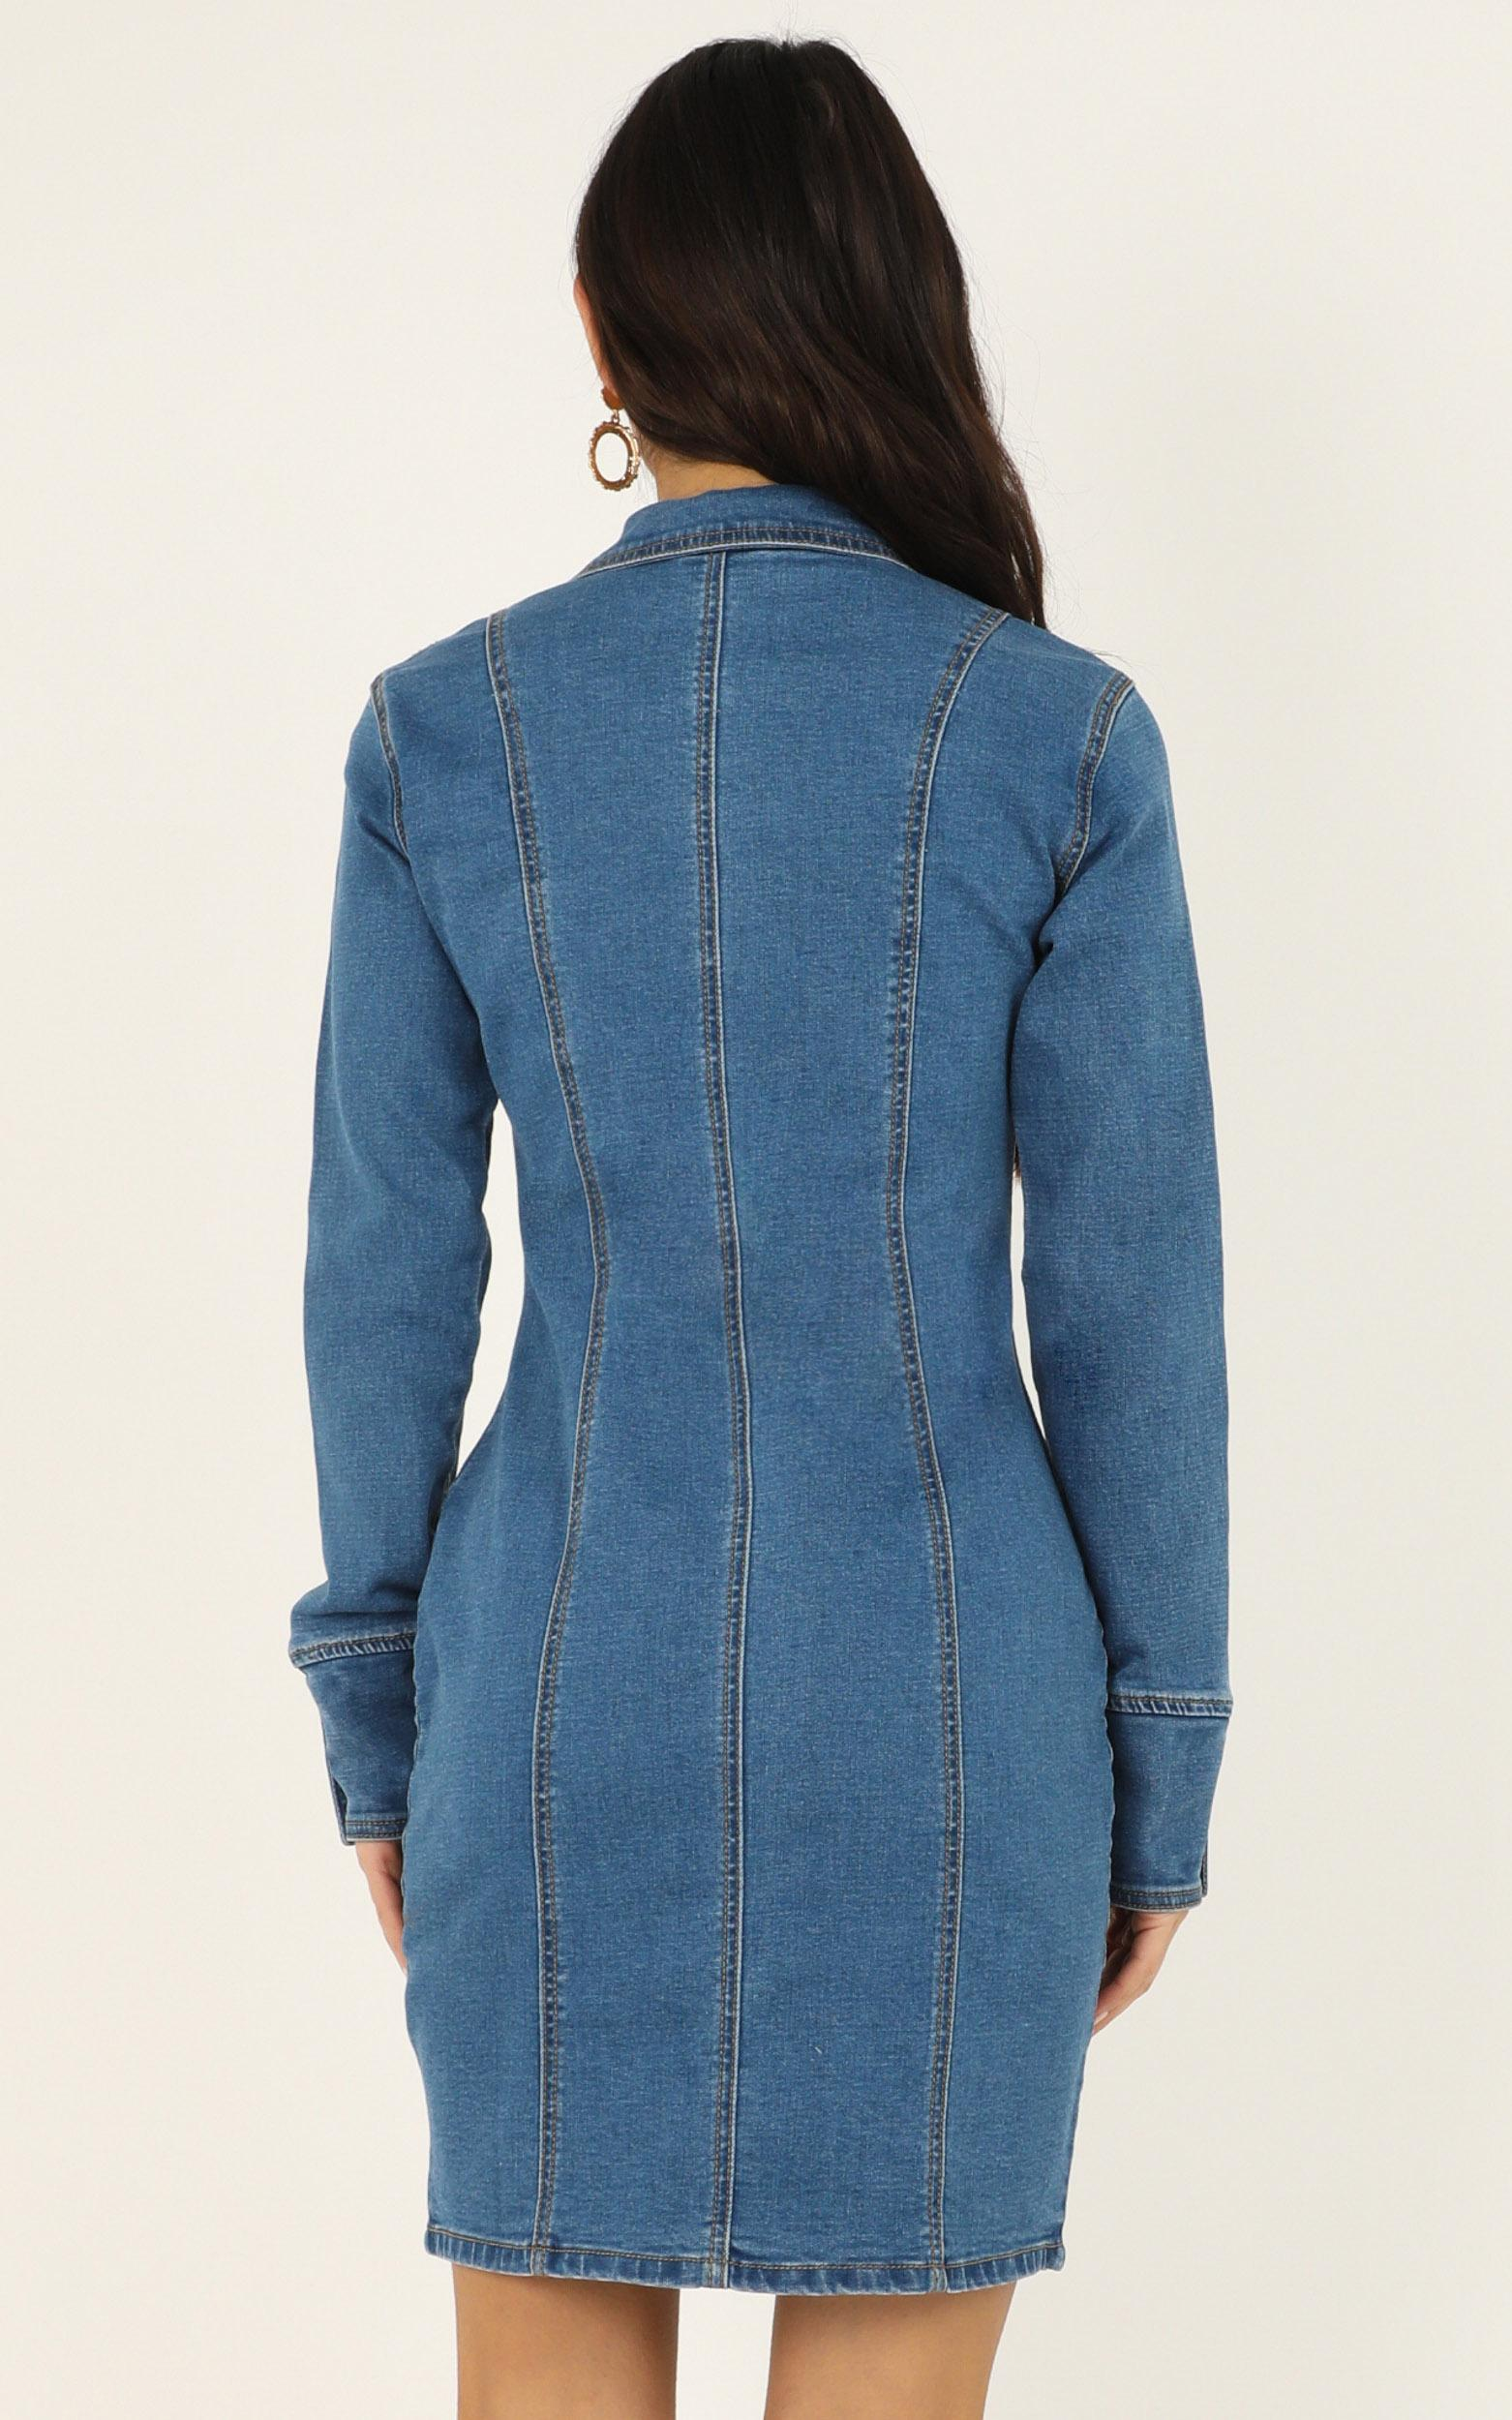 Somebody New Dress In mid blue denim - 18 (XXXL), Blue, hi-res image number null